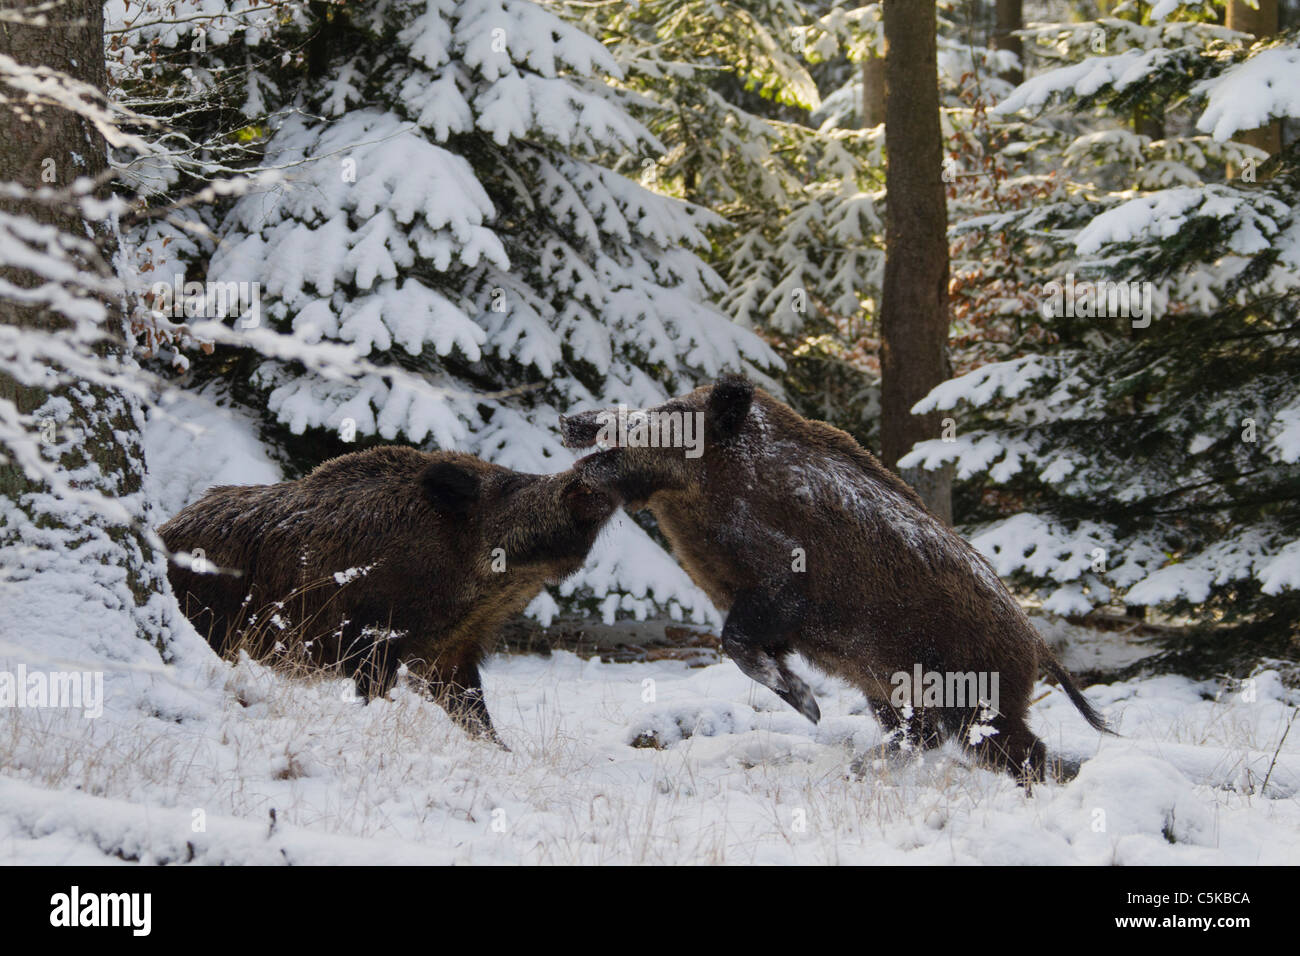 Two Wild boars (Sus scrofa) fighting in pine forest in the snow in winter, Germany - Stock Image